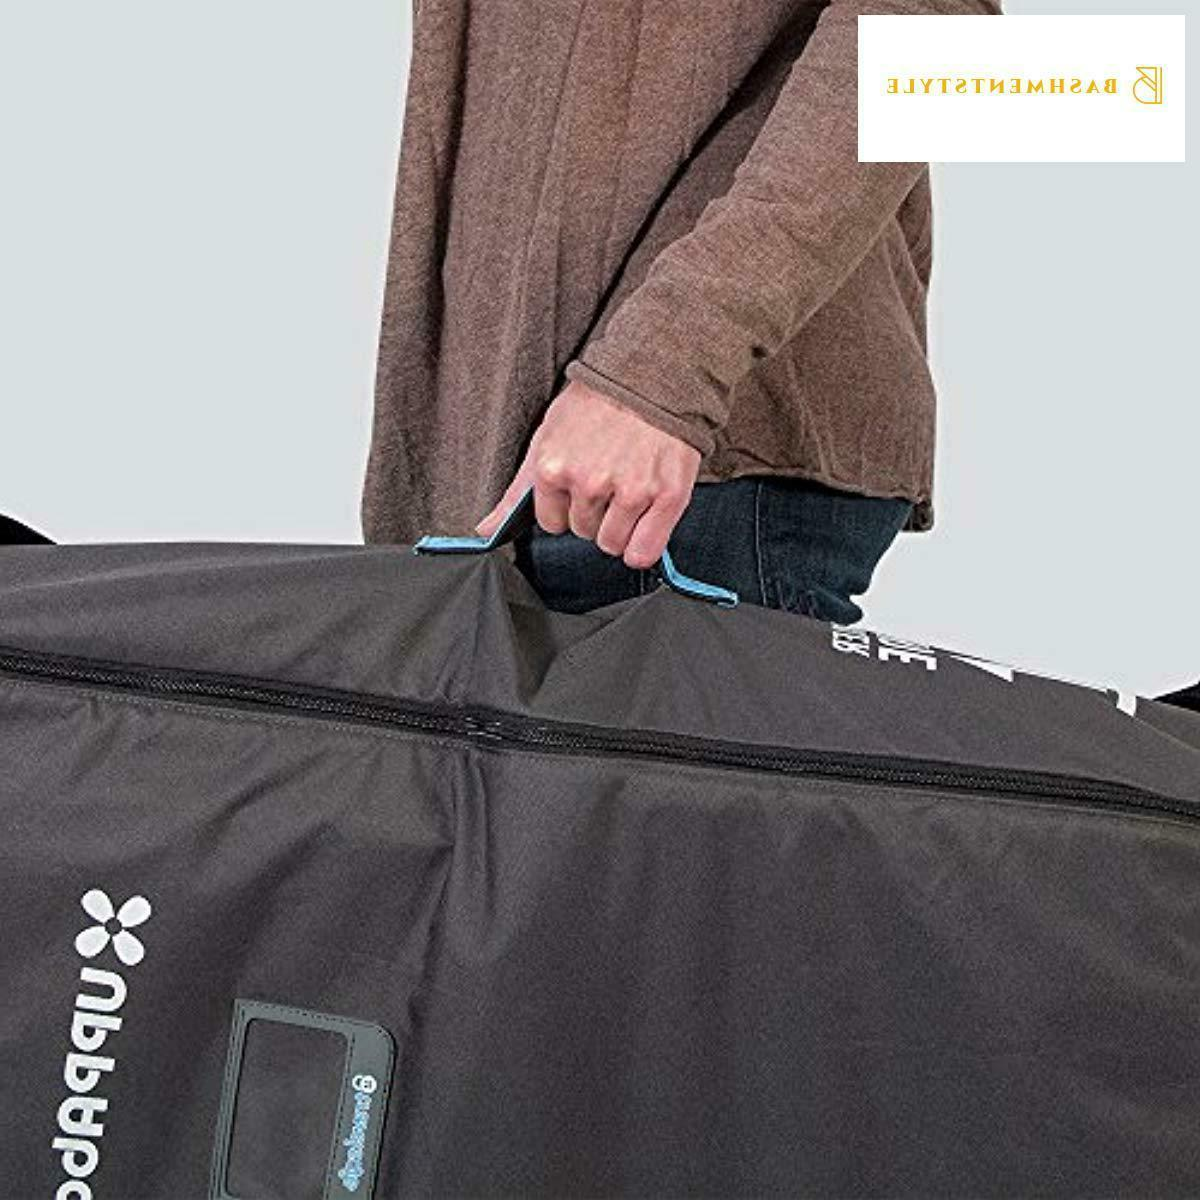 UPPAbaby Travel Bag with TravelSafe